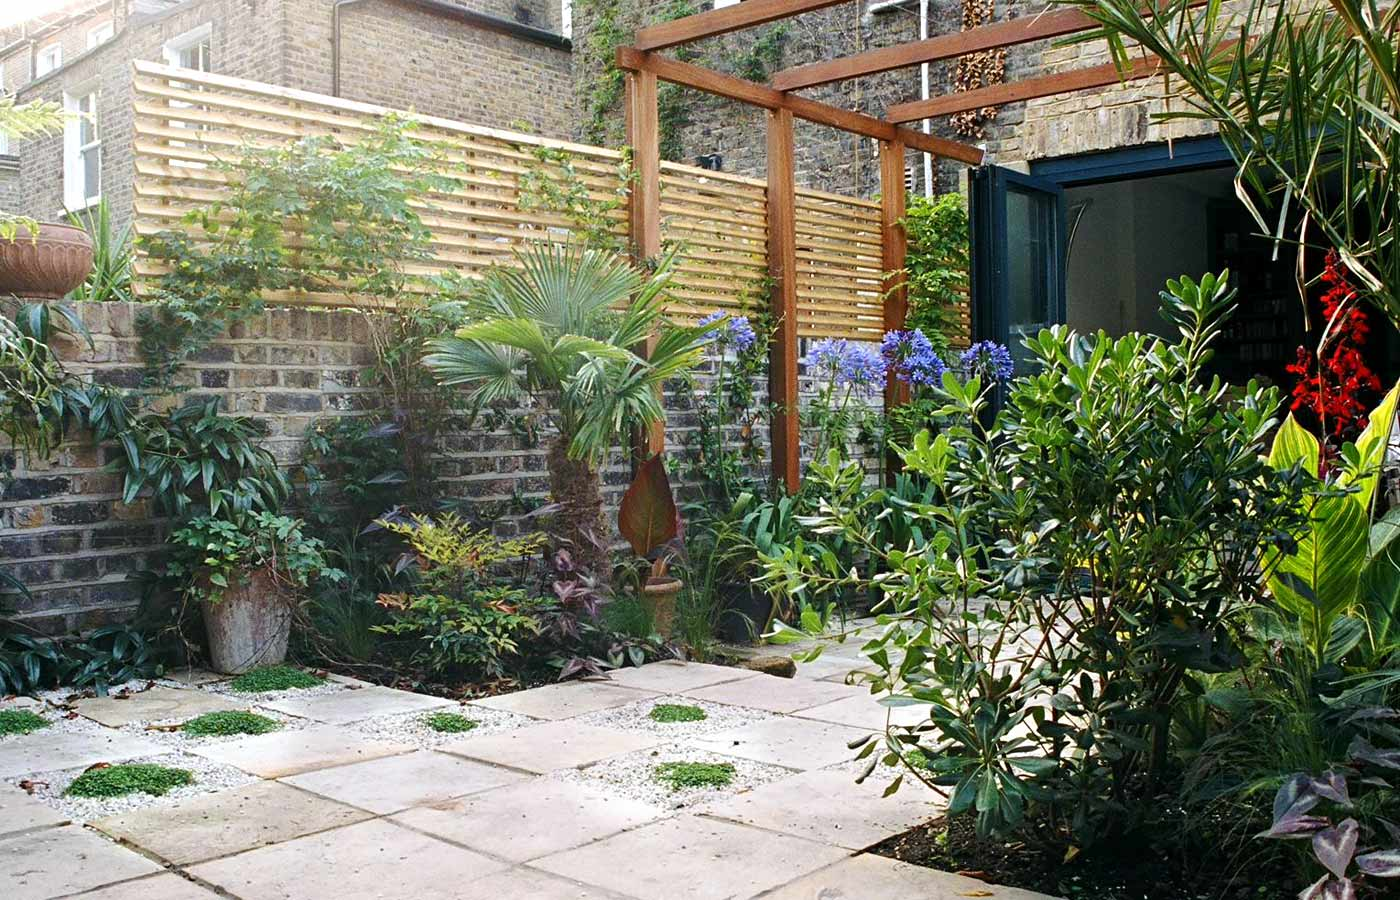 Courtyard garden design north london garden design for Courtyard garden ideas photos